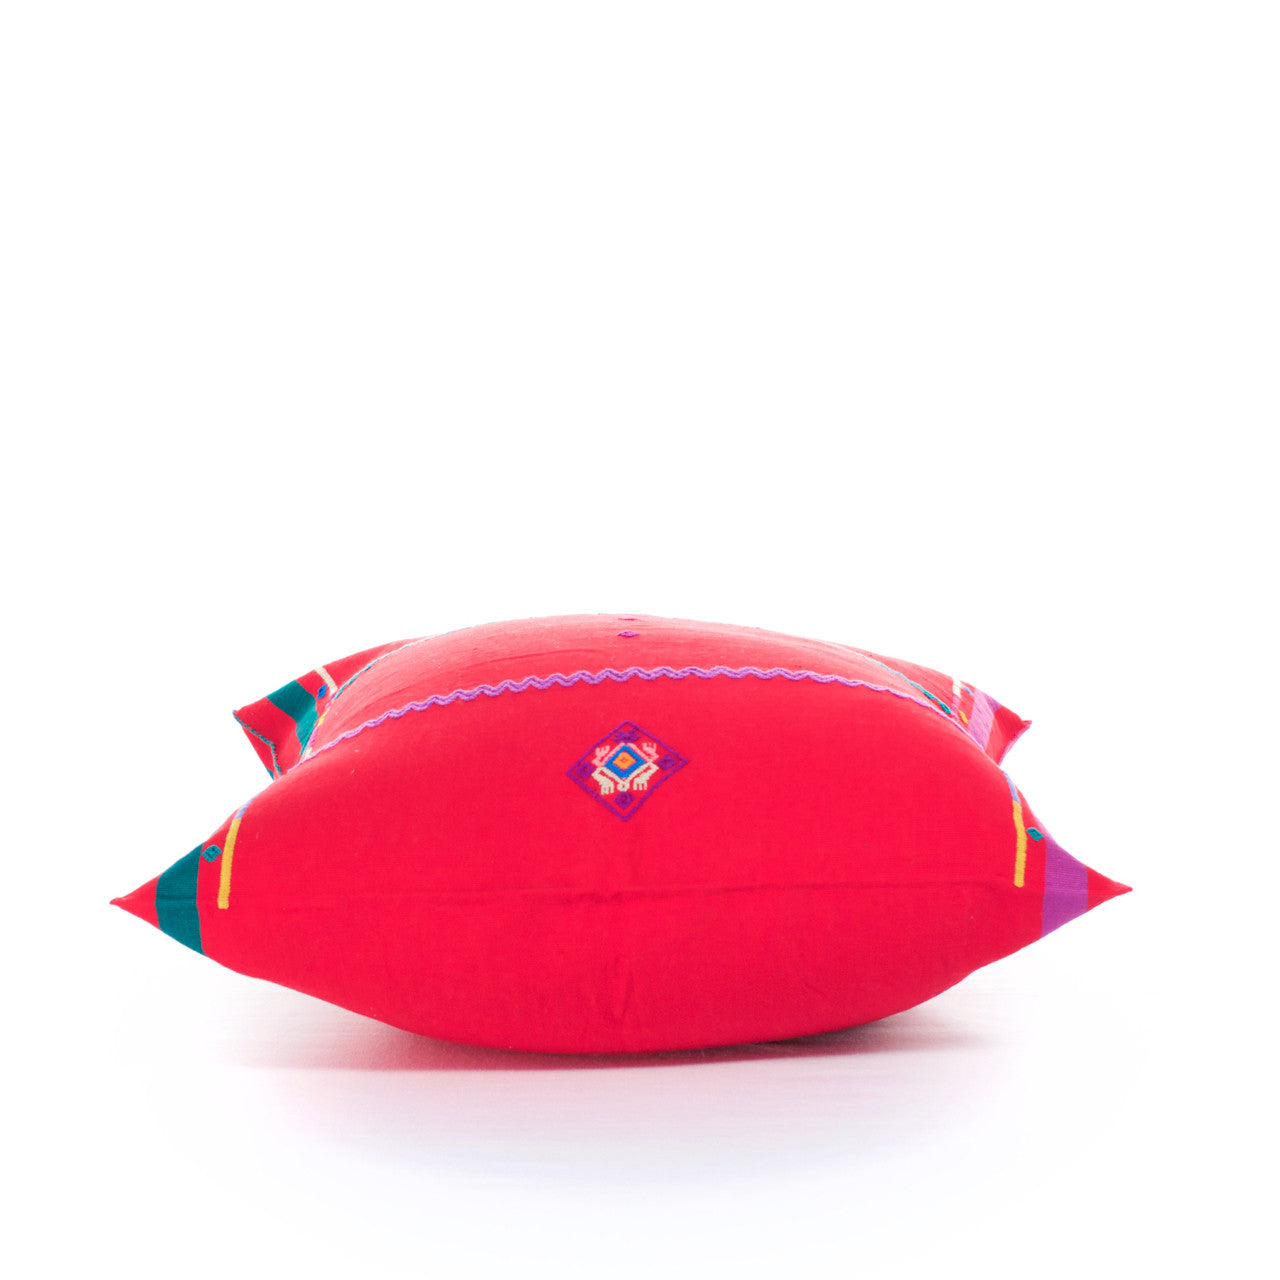 Sapo Cushion - Cielo Collective - Red with Purple & Green Stripe - 3